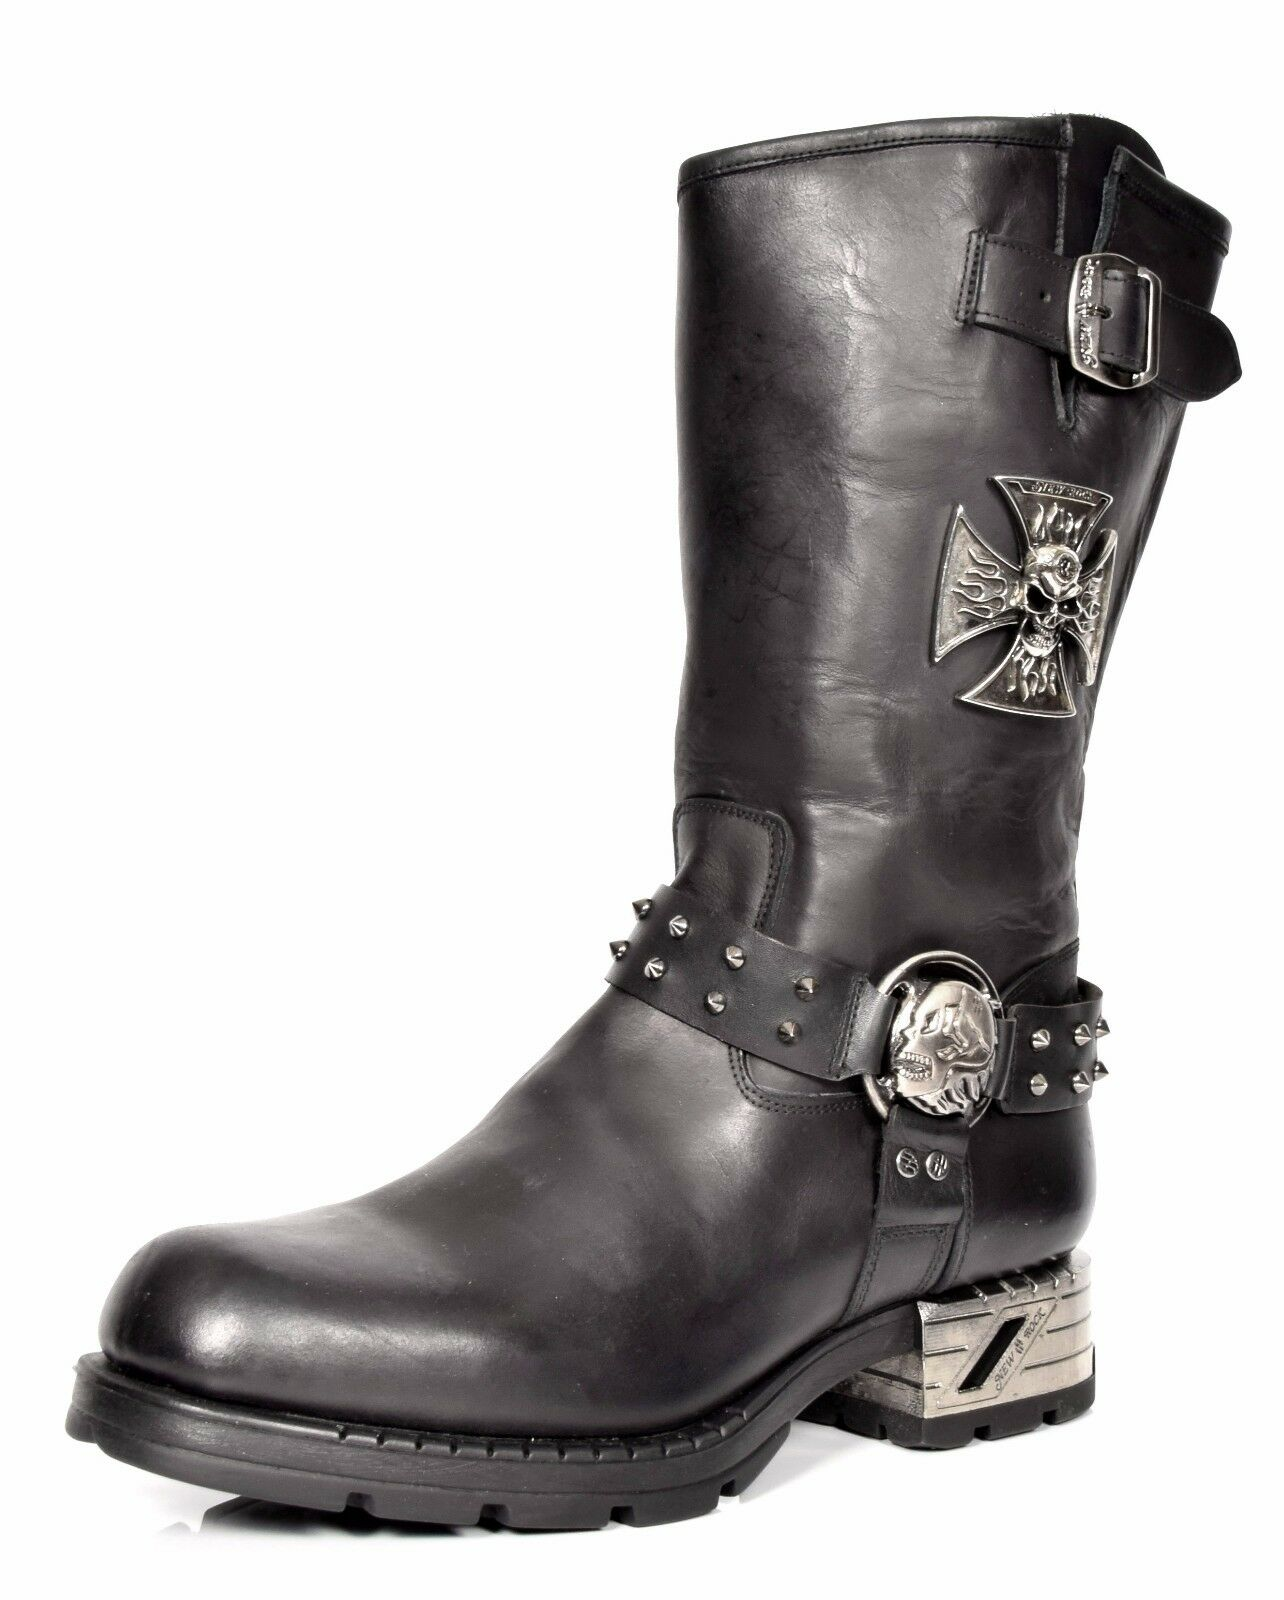 NEW ROCK 107-S1 RED SKULL DEVIL METALLIC METALLIC METALLIC BLACK LEATHER NEWROCK BOOT BIKER BOOTS 8df145